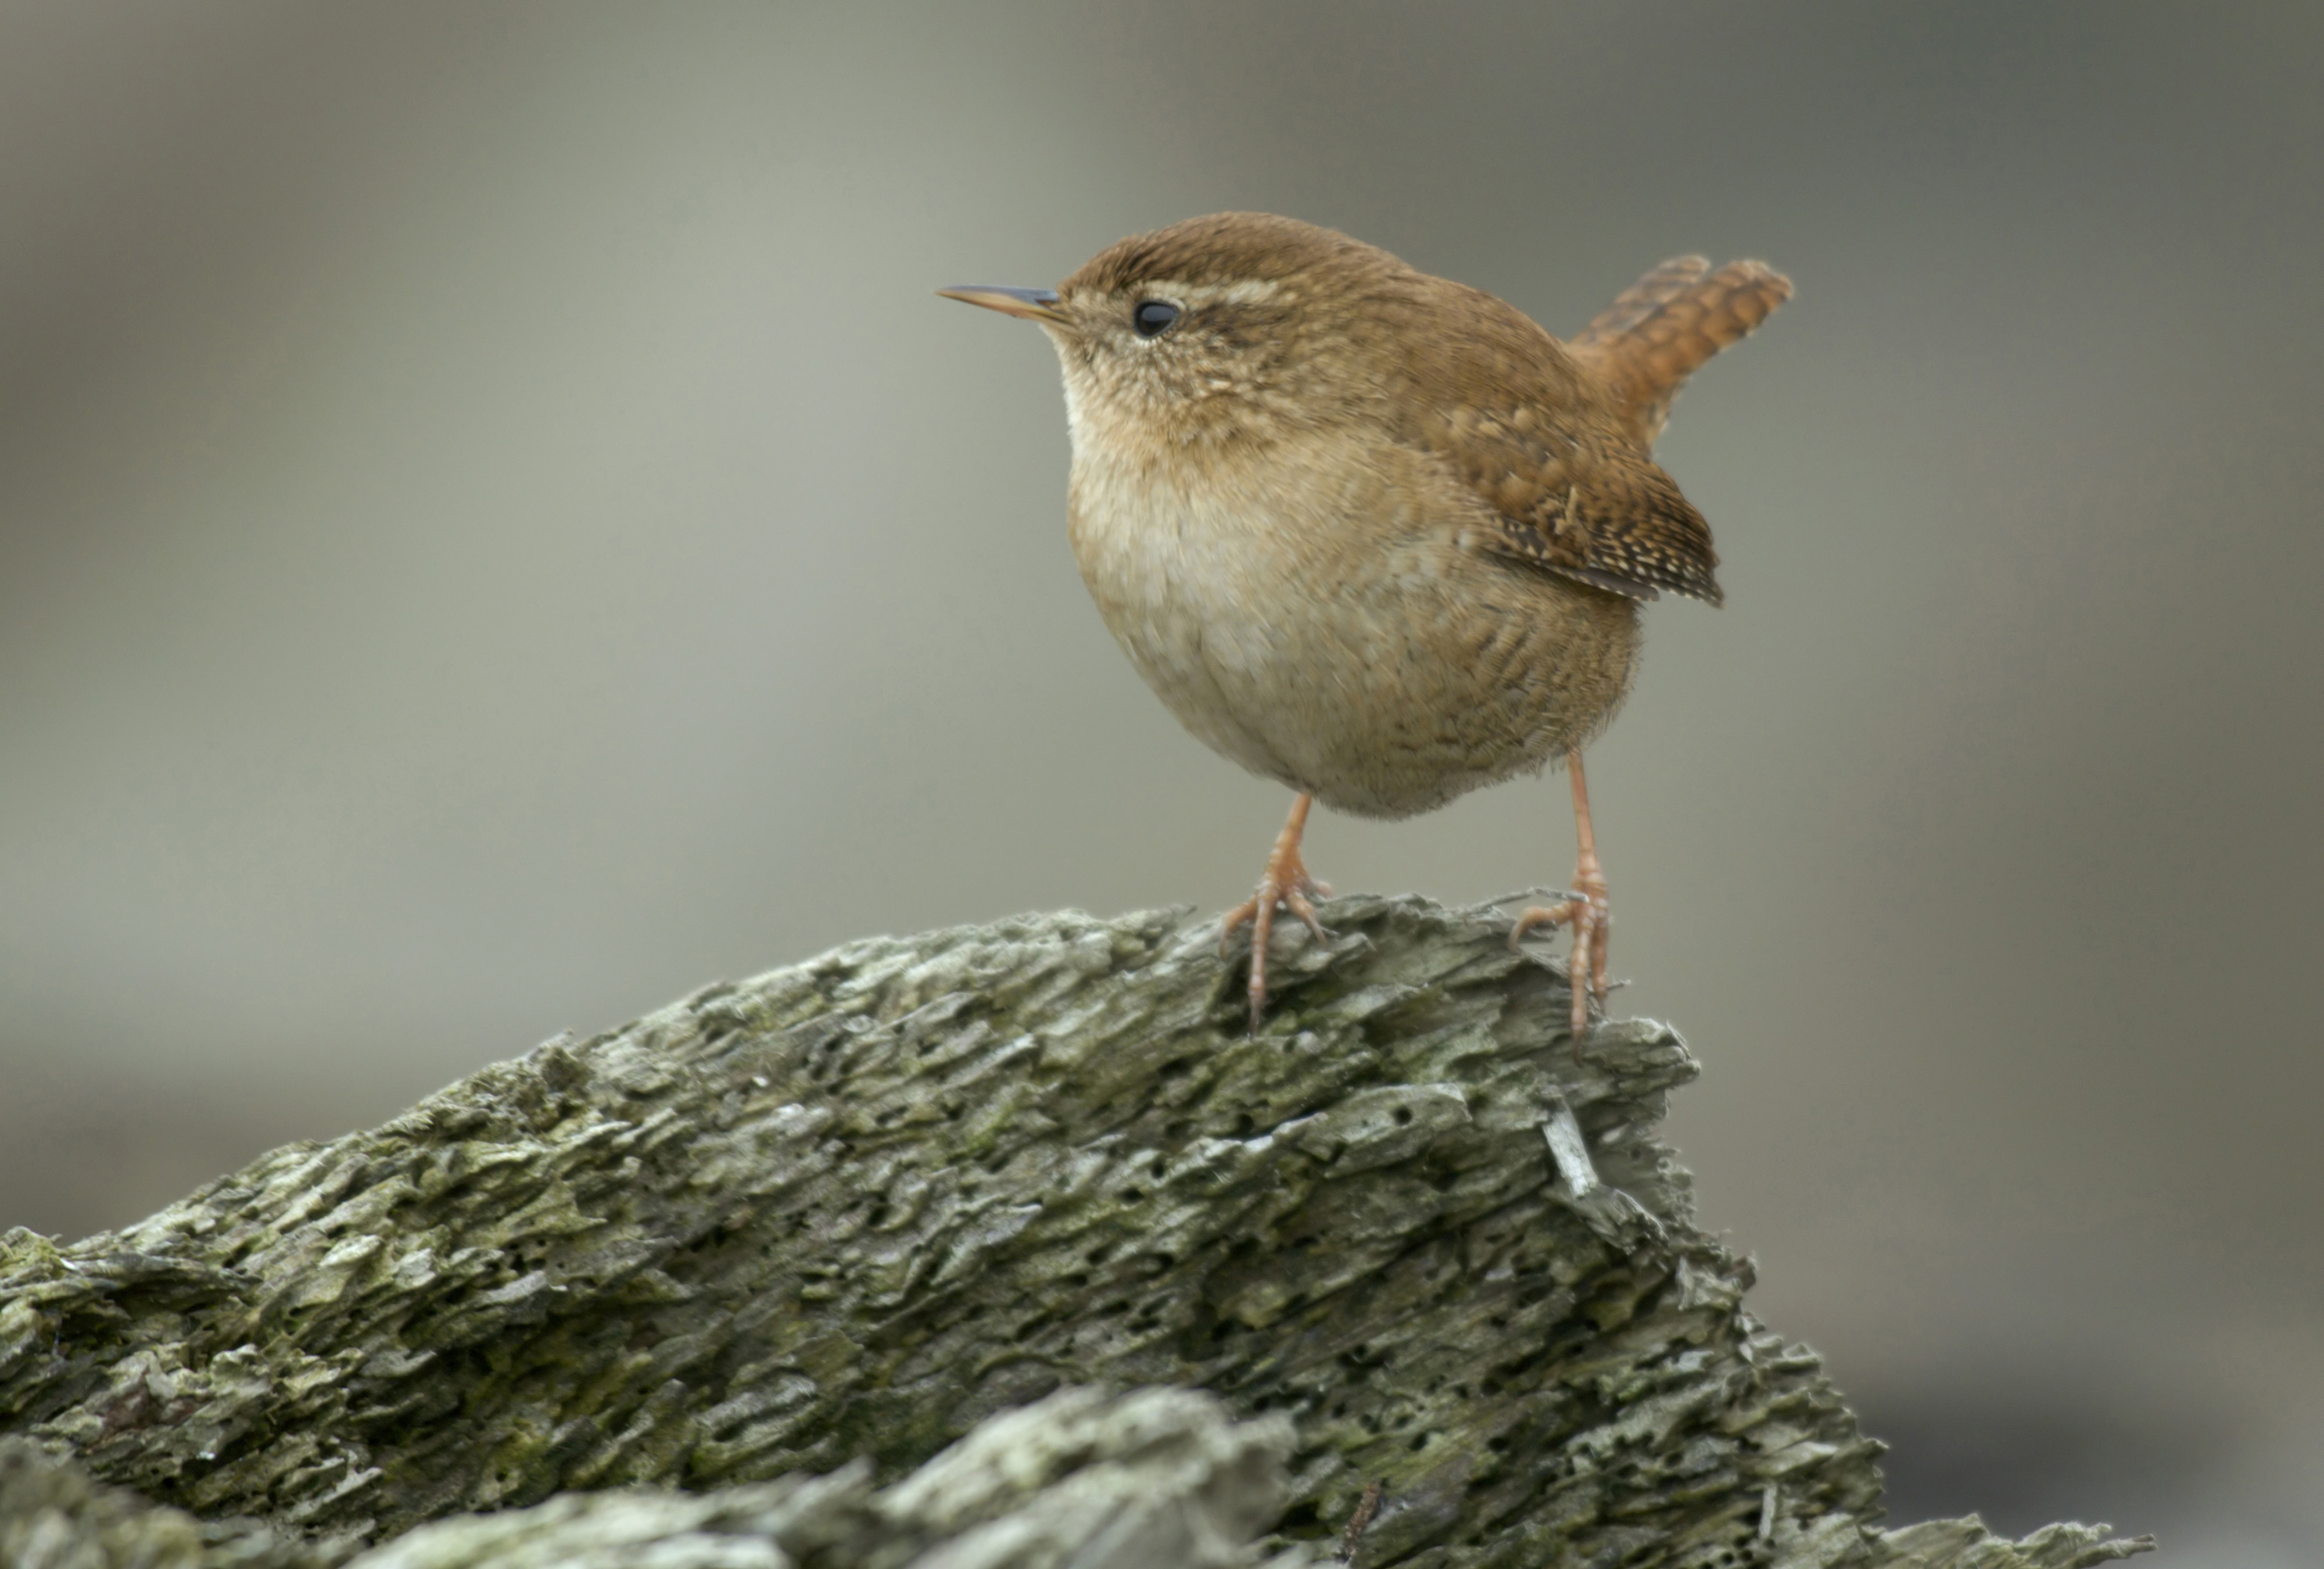 Types of Wrens | Bird Family Overview - The RSPB